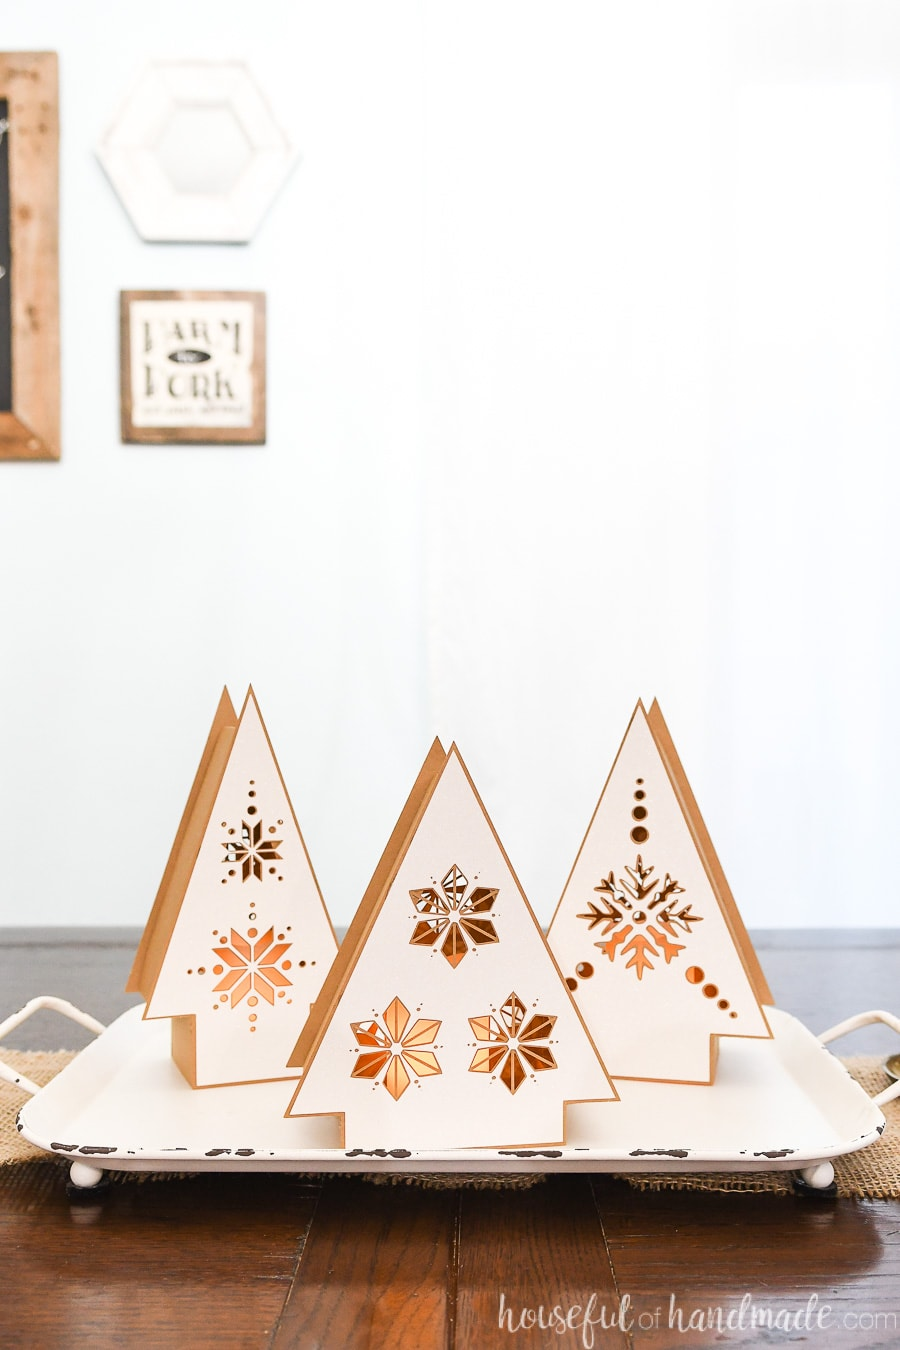 Christmas table centerpiece made of 3 Nordic paper Christmas tree shaped lanterns on a tray.